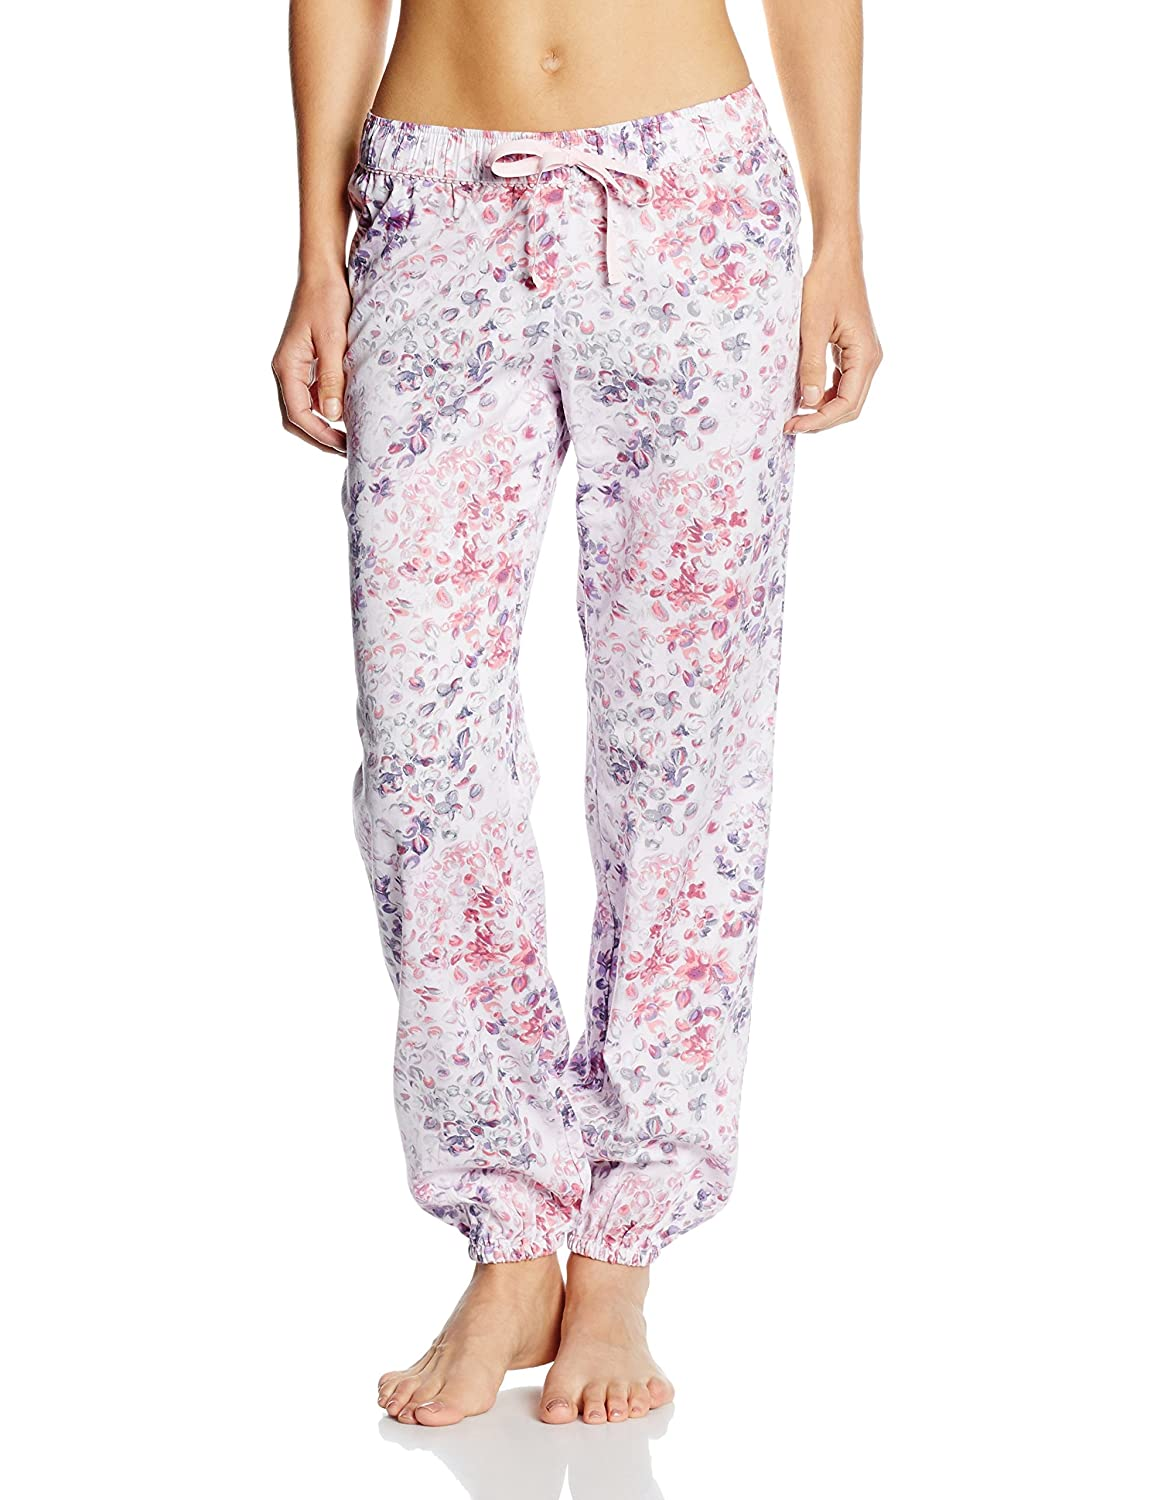 Triumph M&M AW16 Trousers Floral-Parte Inferior del Pijama Mujer (Multi-Colour M9) 46: Amazon.es: Ropa y accesorios